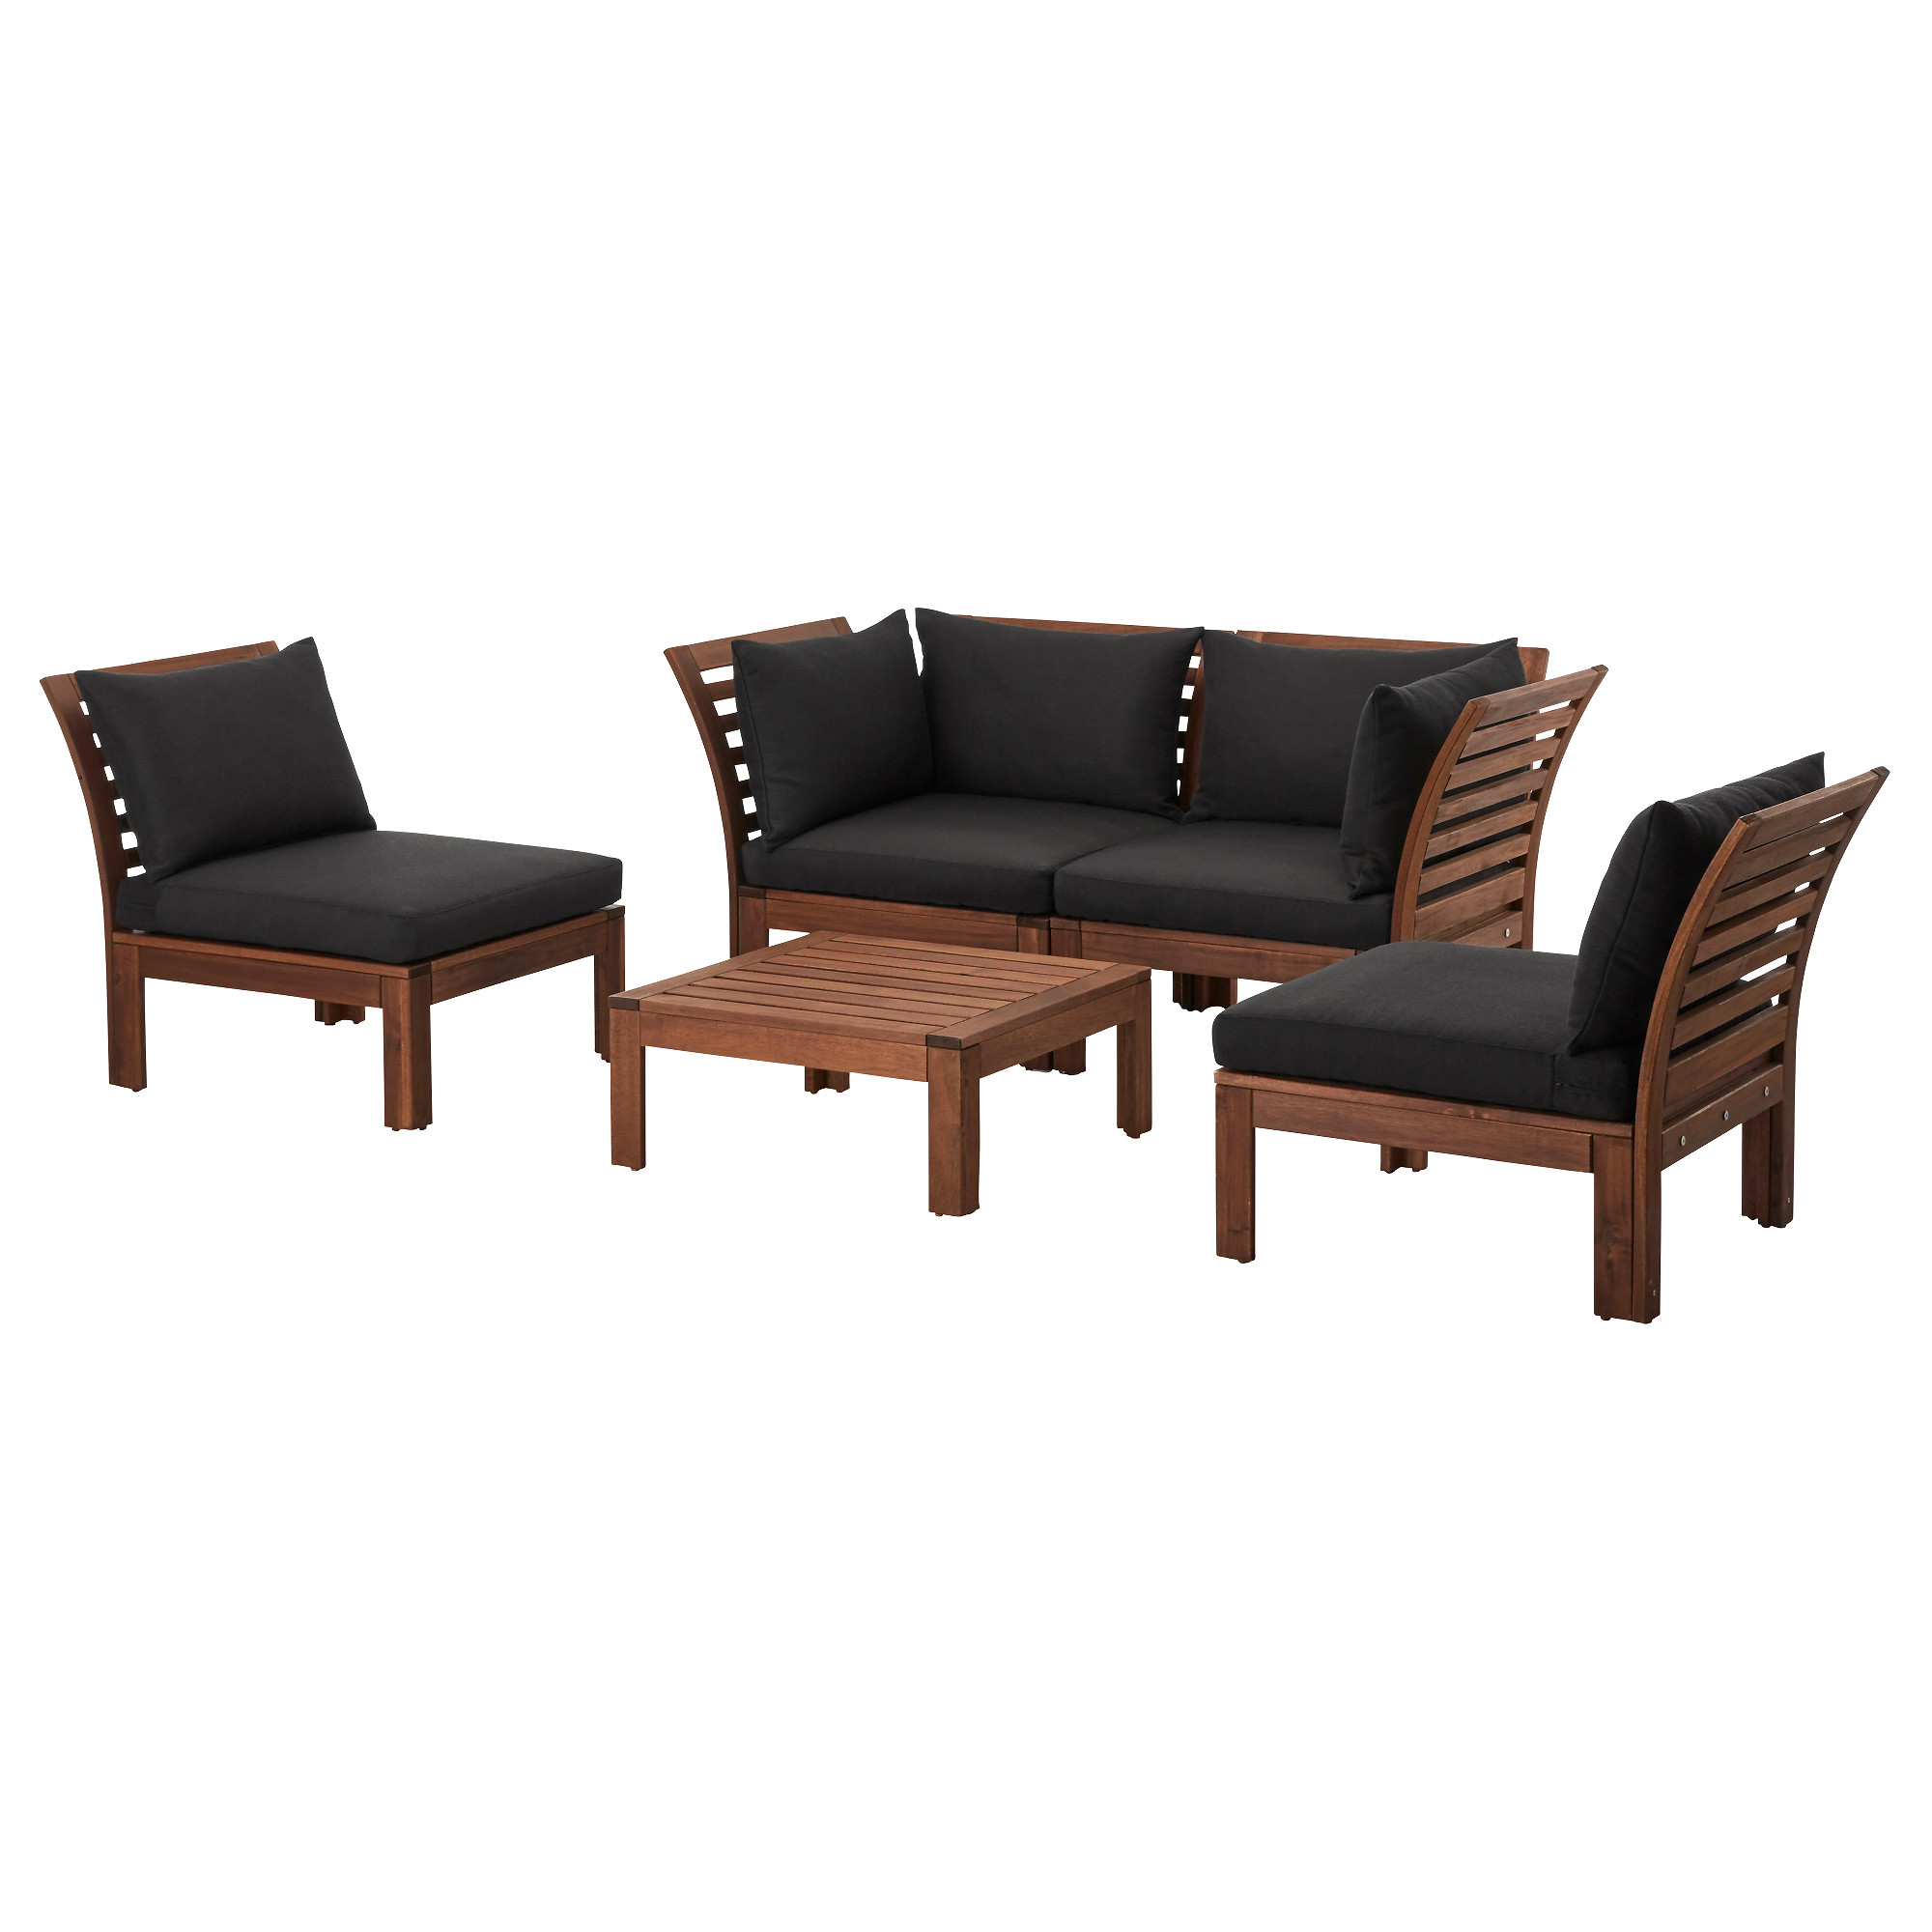 Applaro 4 Seat Conversation Set Outdoor Brown Stained Hallo Black Ikea Hong Kong And Macau